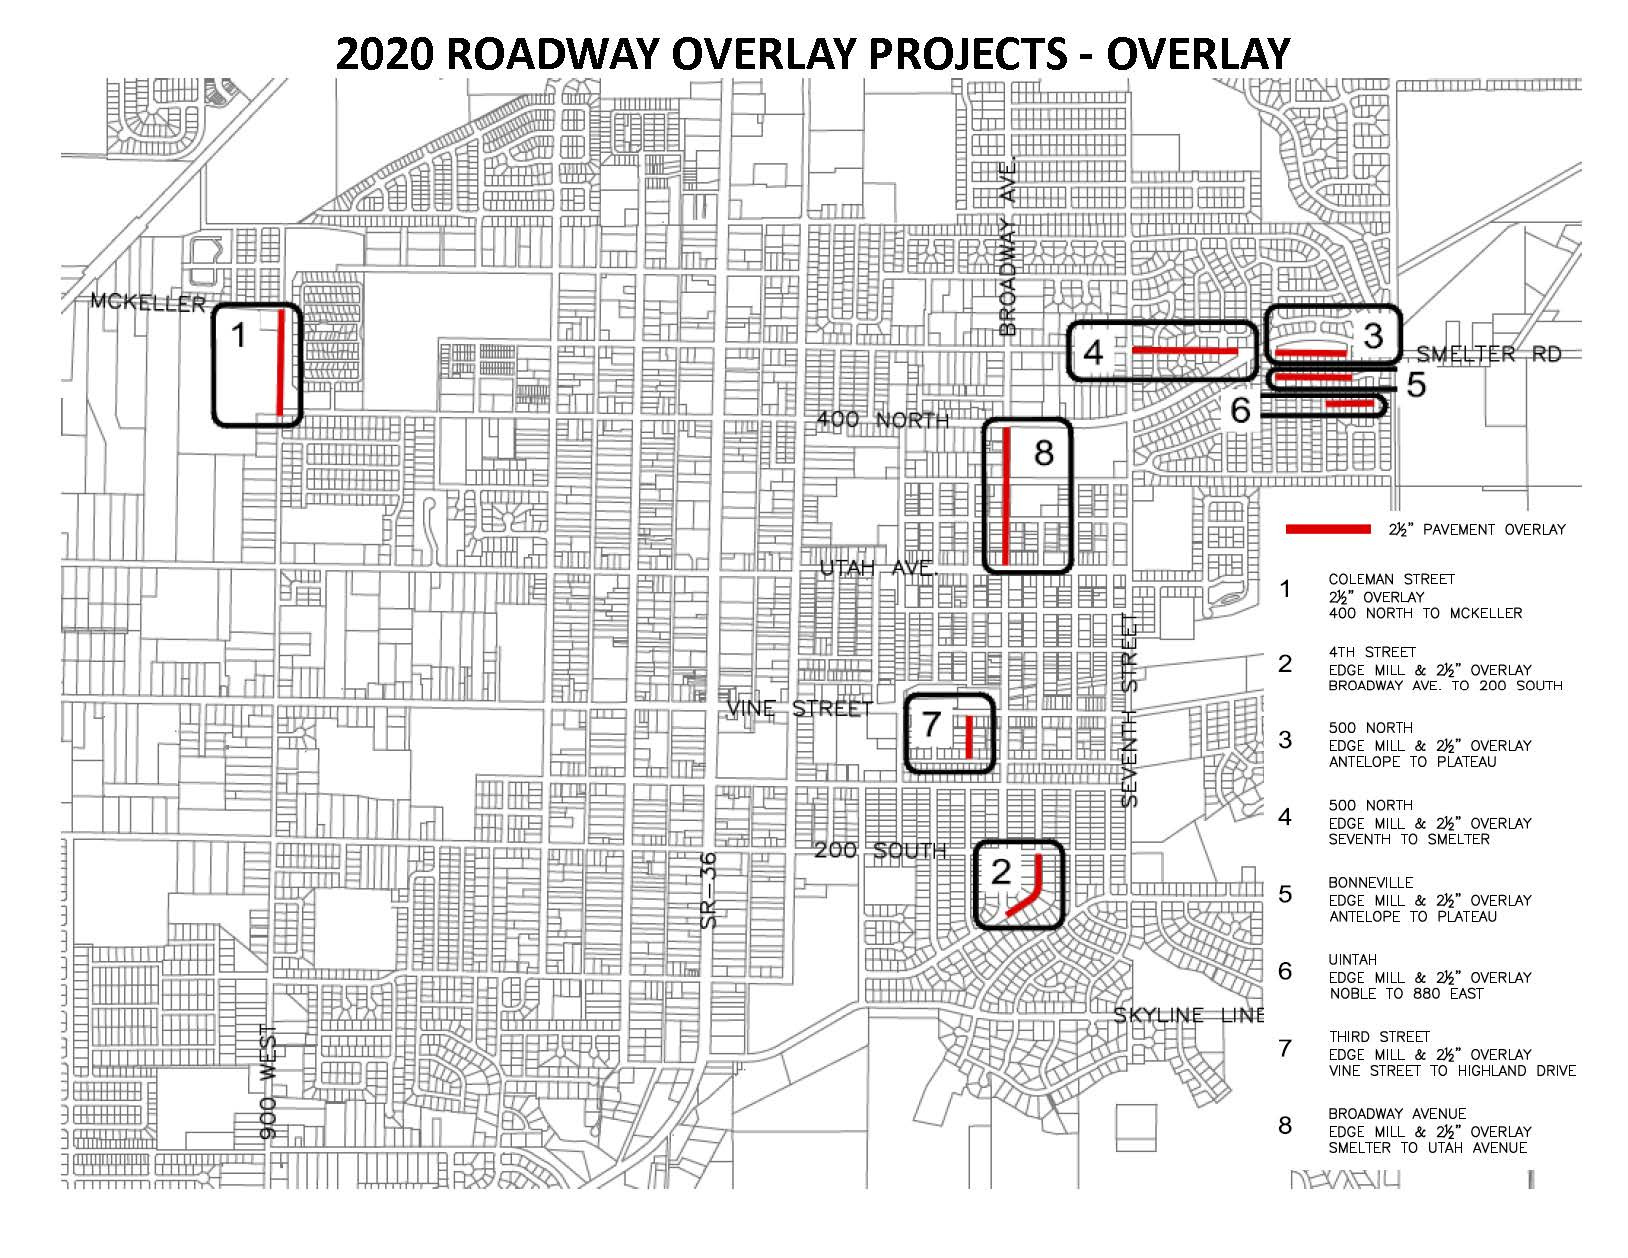 2020 Roadway Overlay Projects